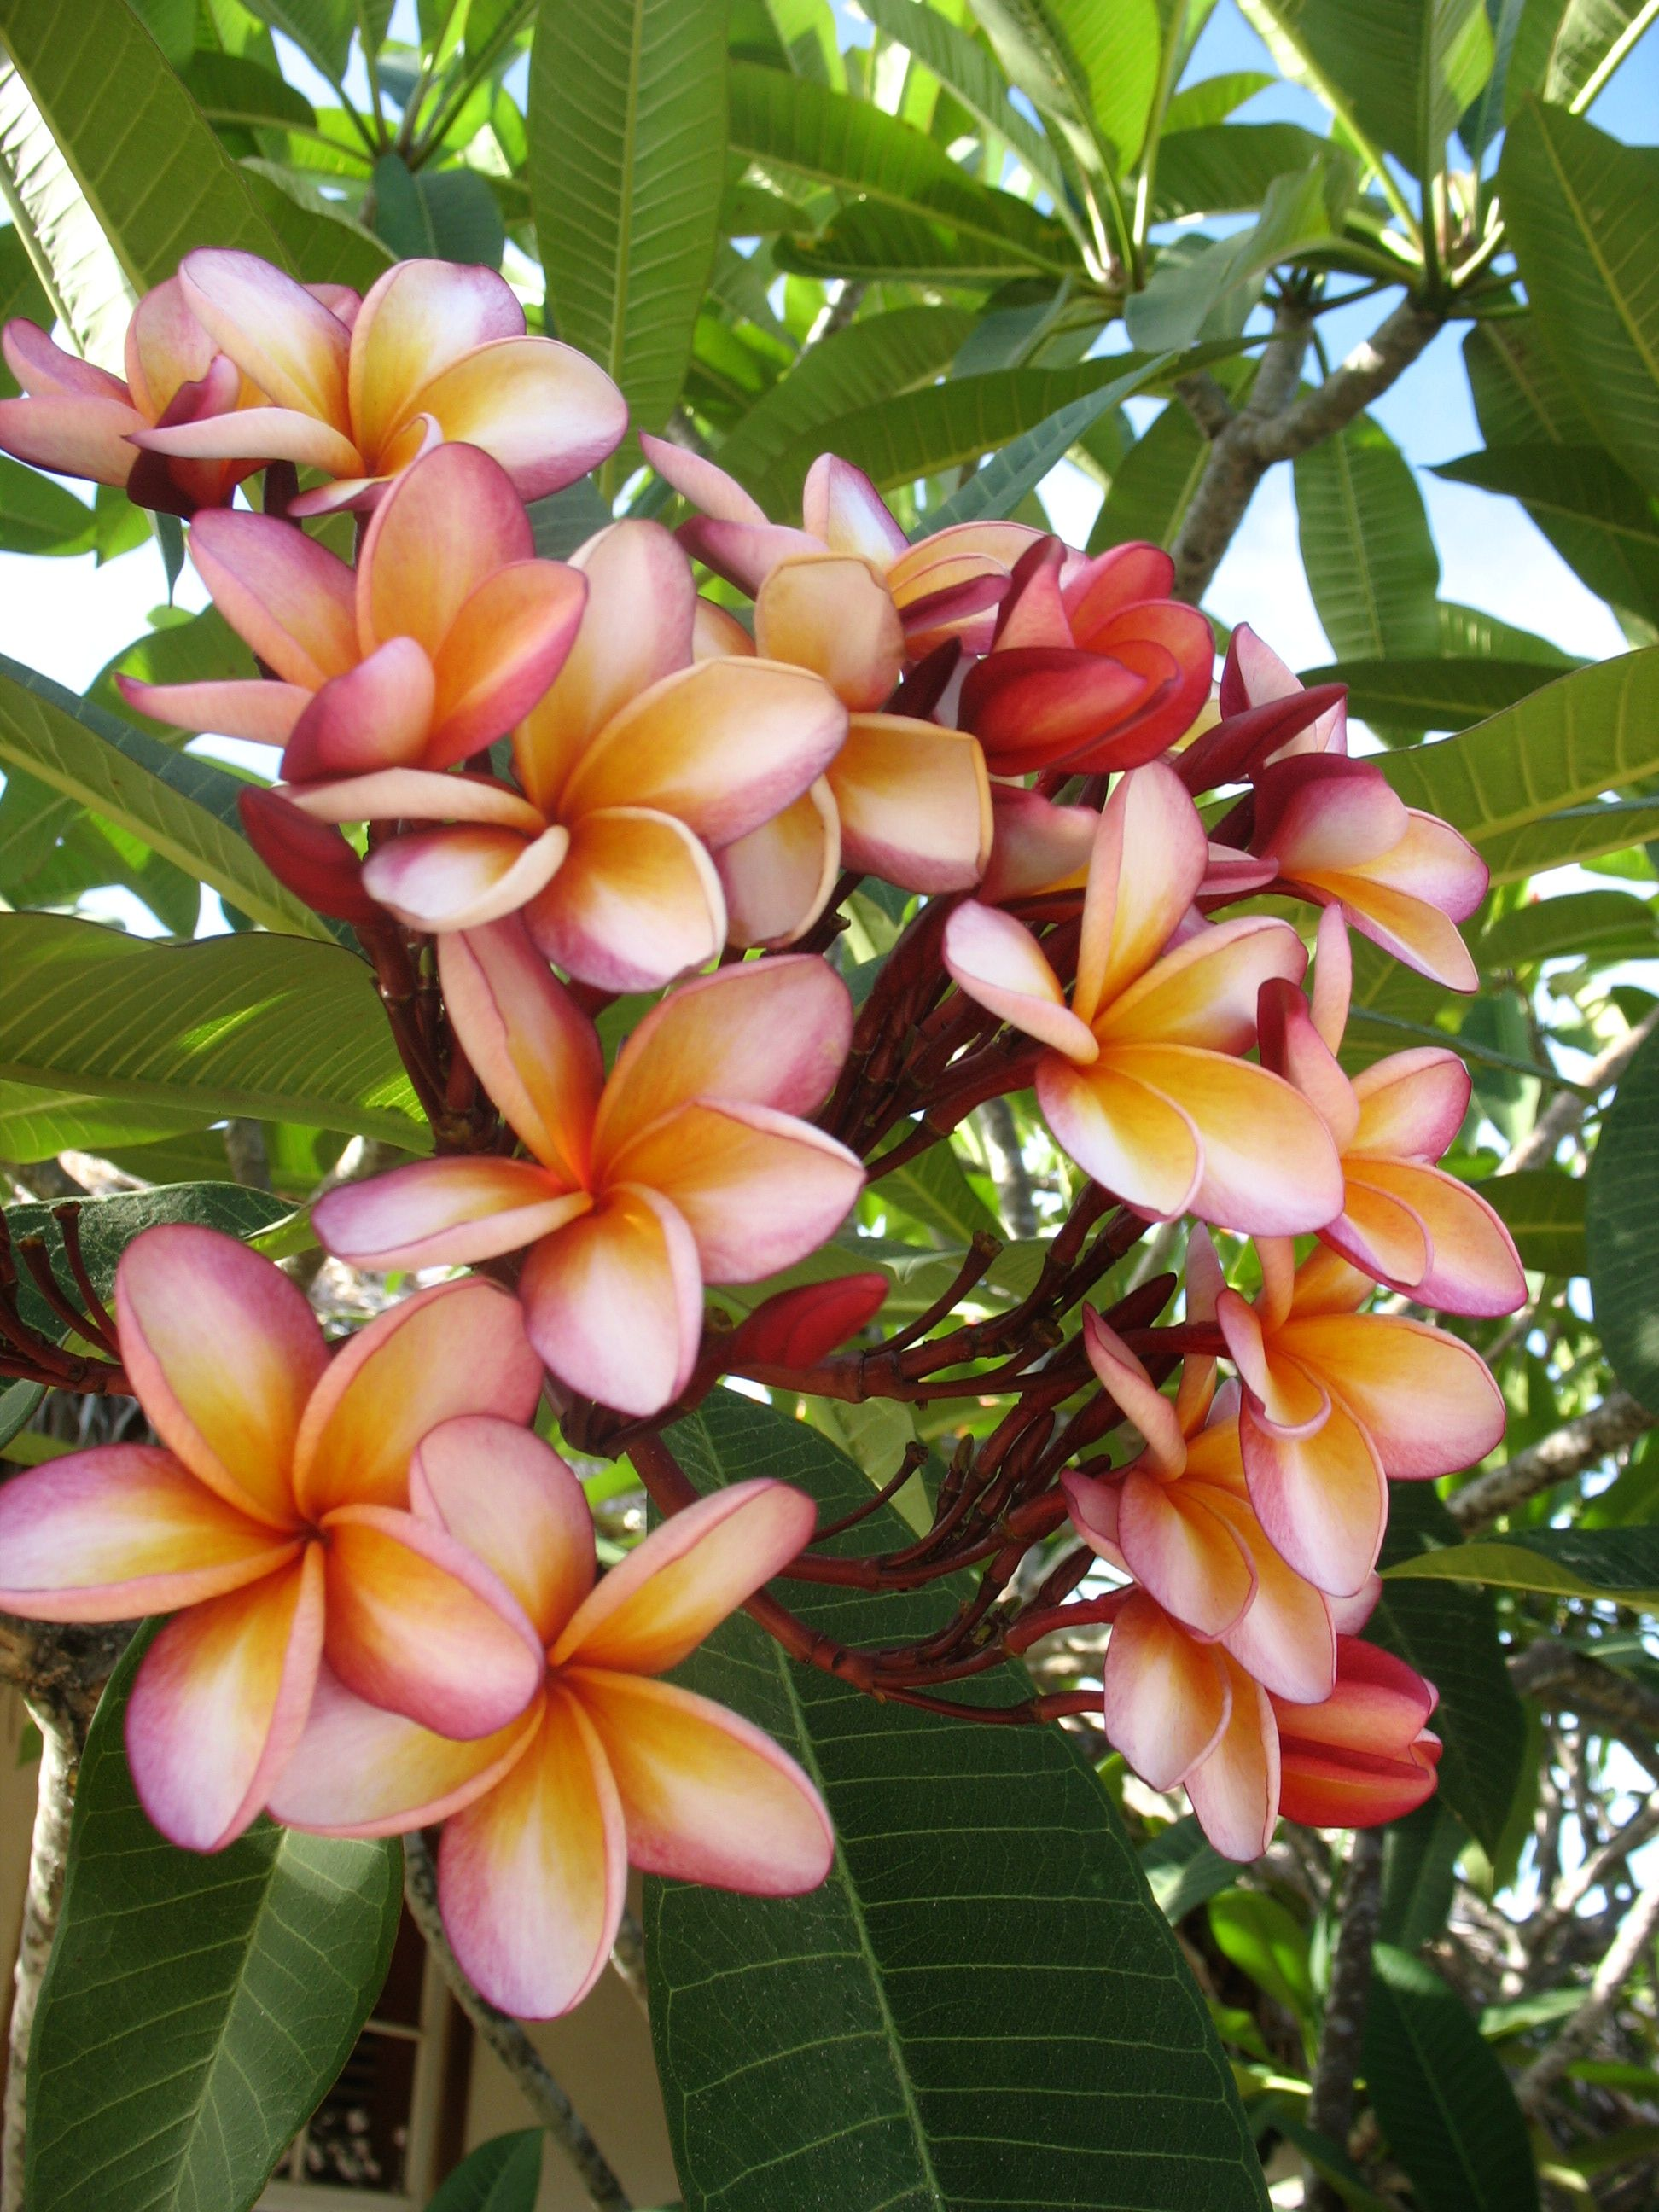 Plumeria/ kalachuchi, I remember waking up early in the